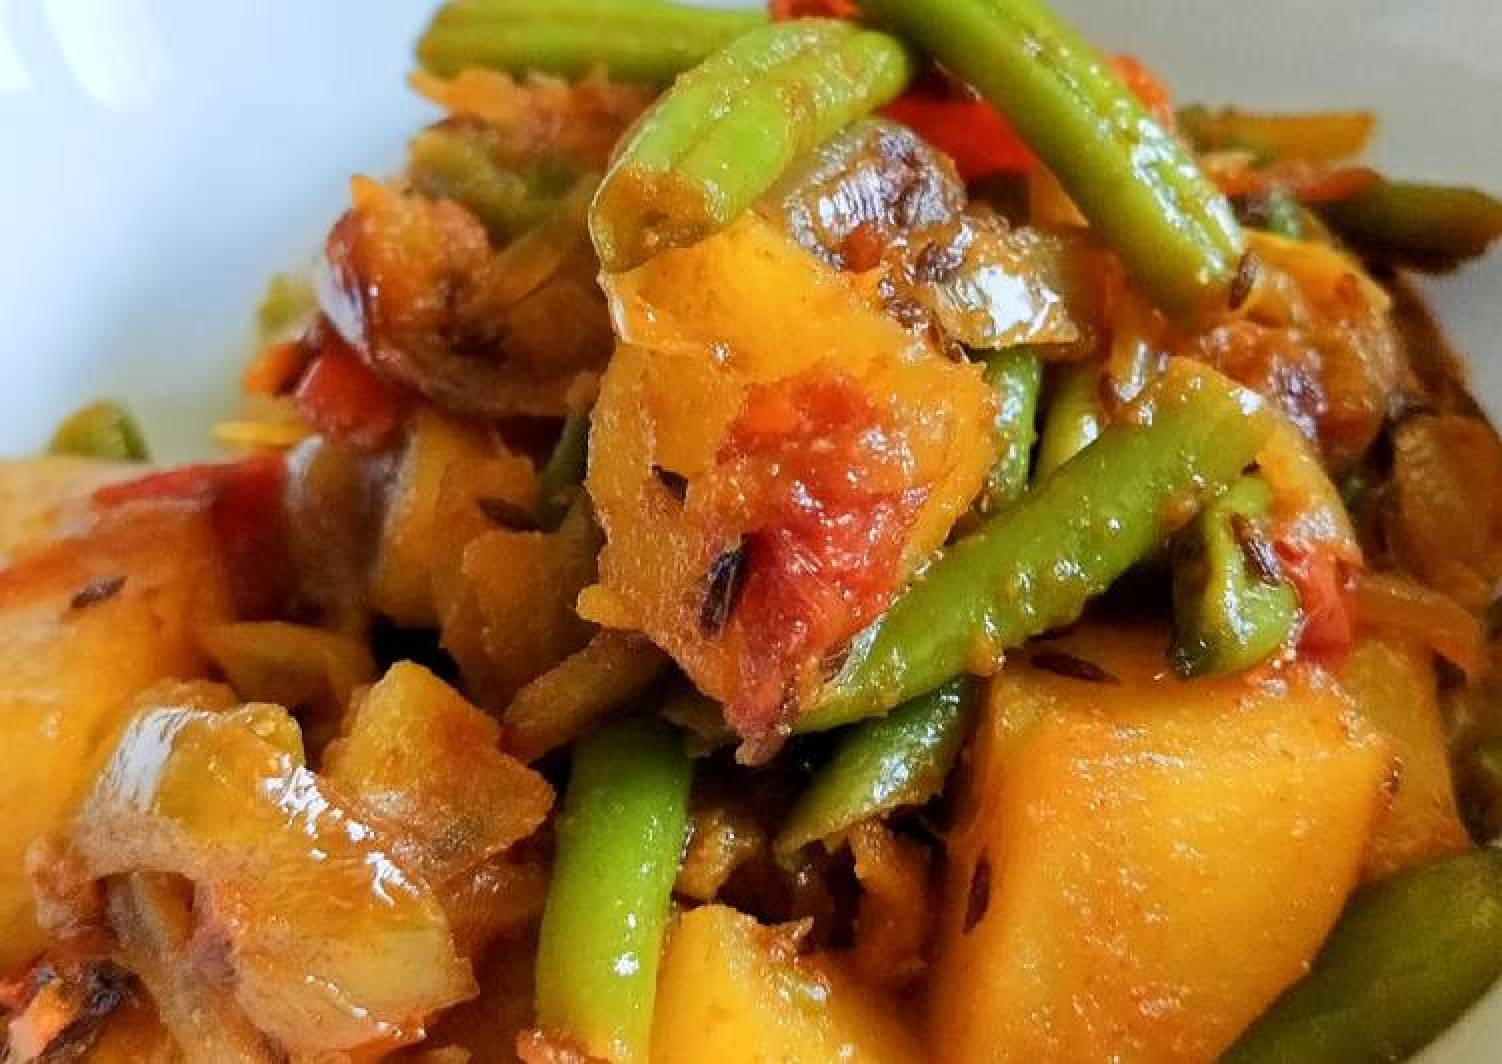 Stir Fry beans, potatoes and tomatoes in caramelized onions